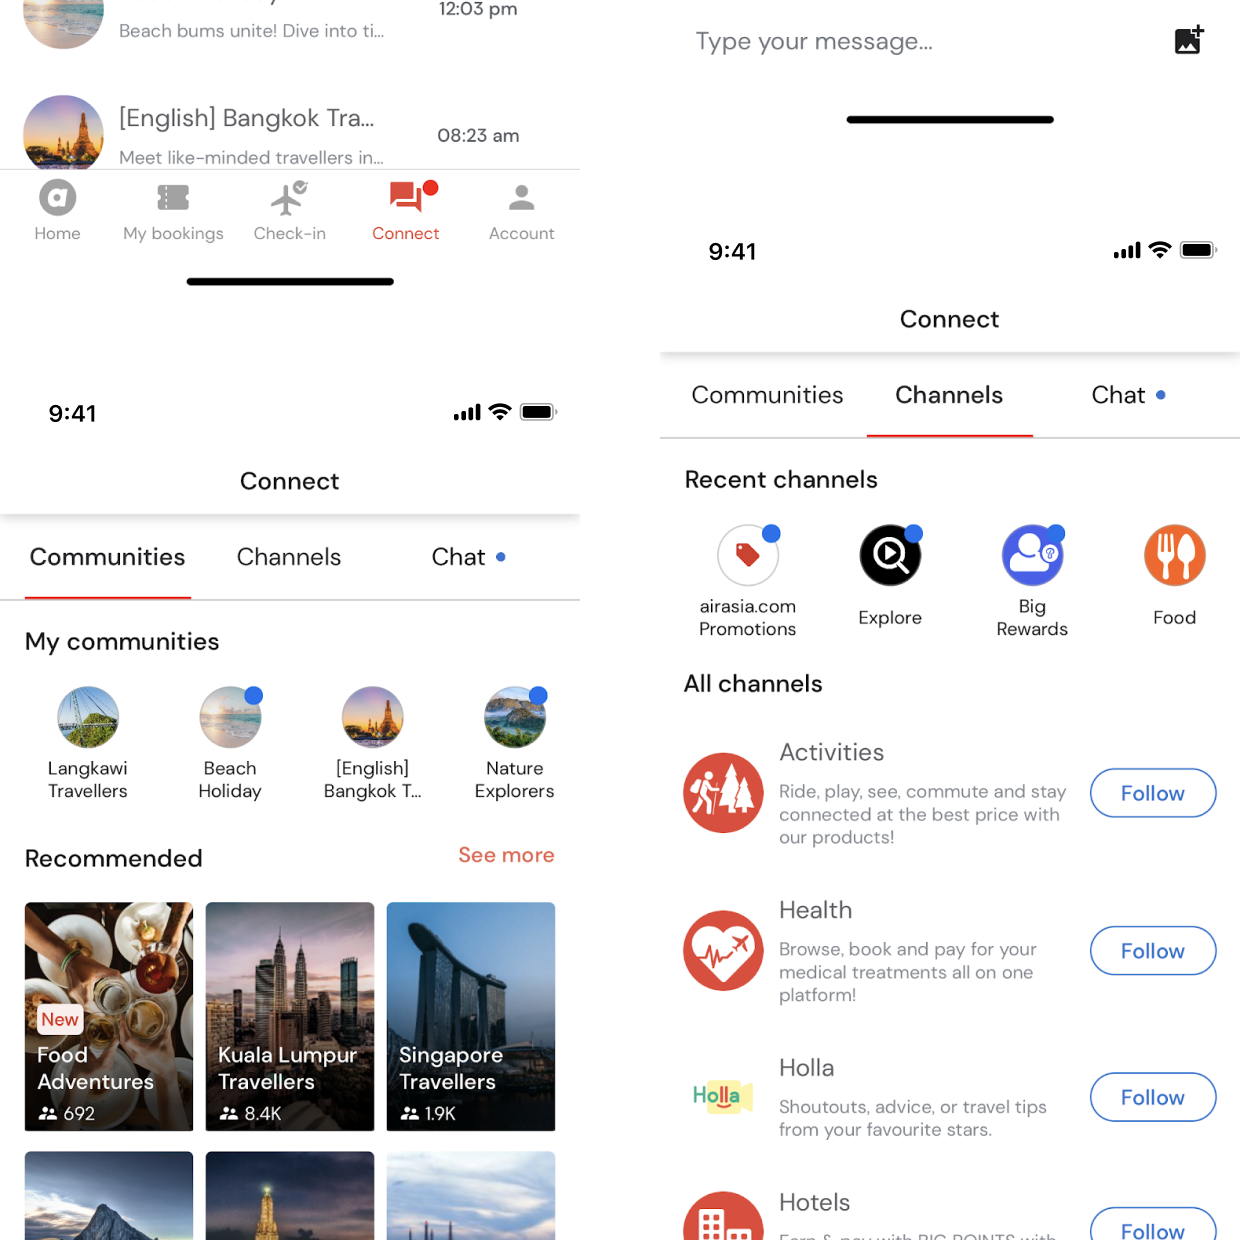 Transform an app into a travel and lifestyle community